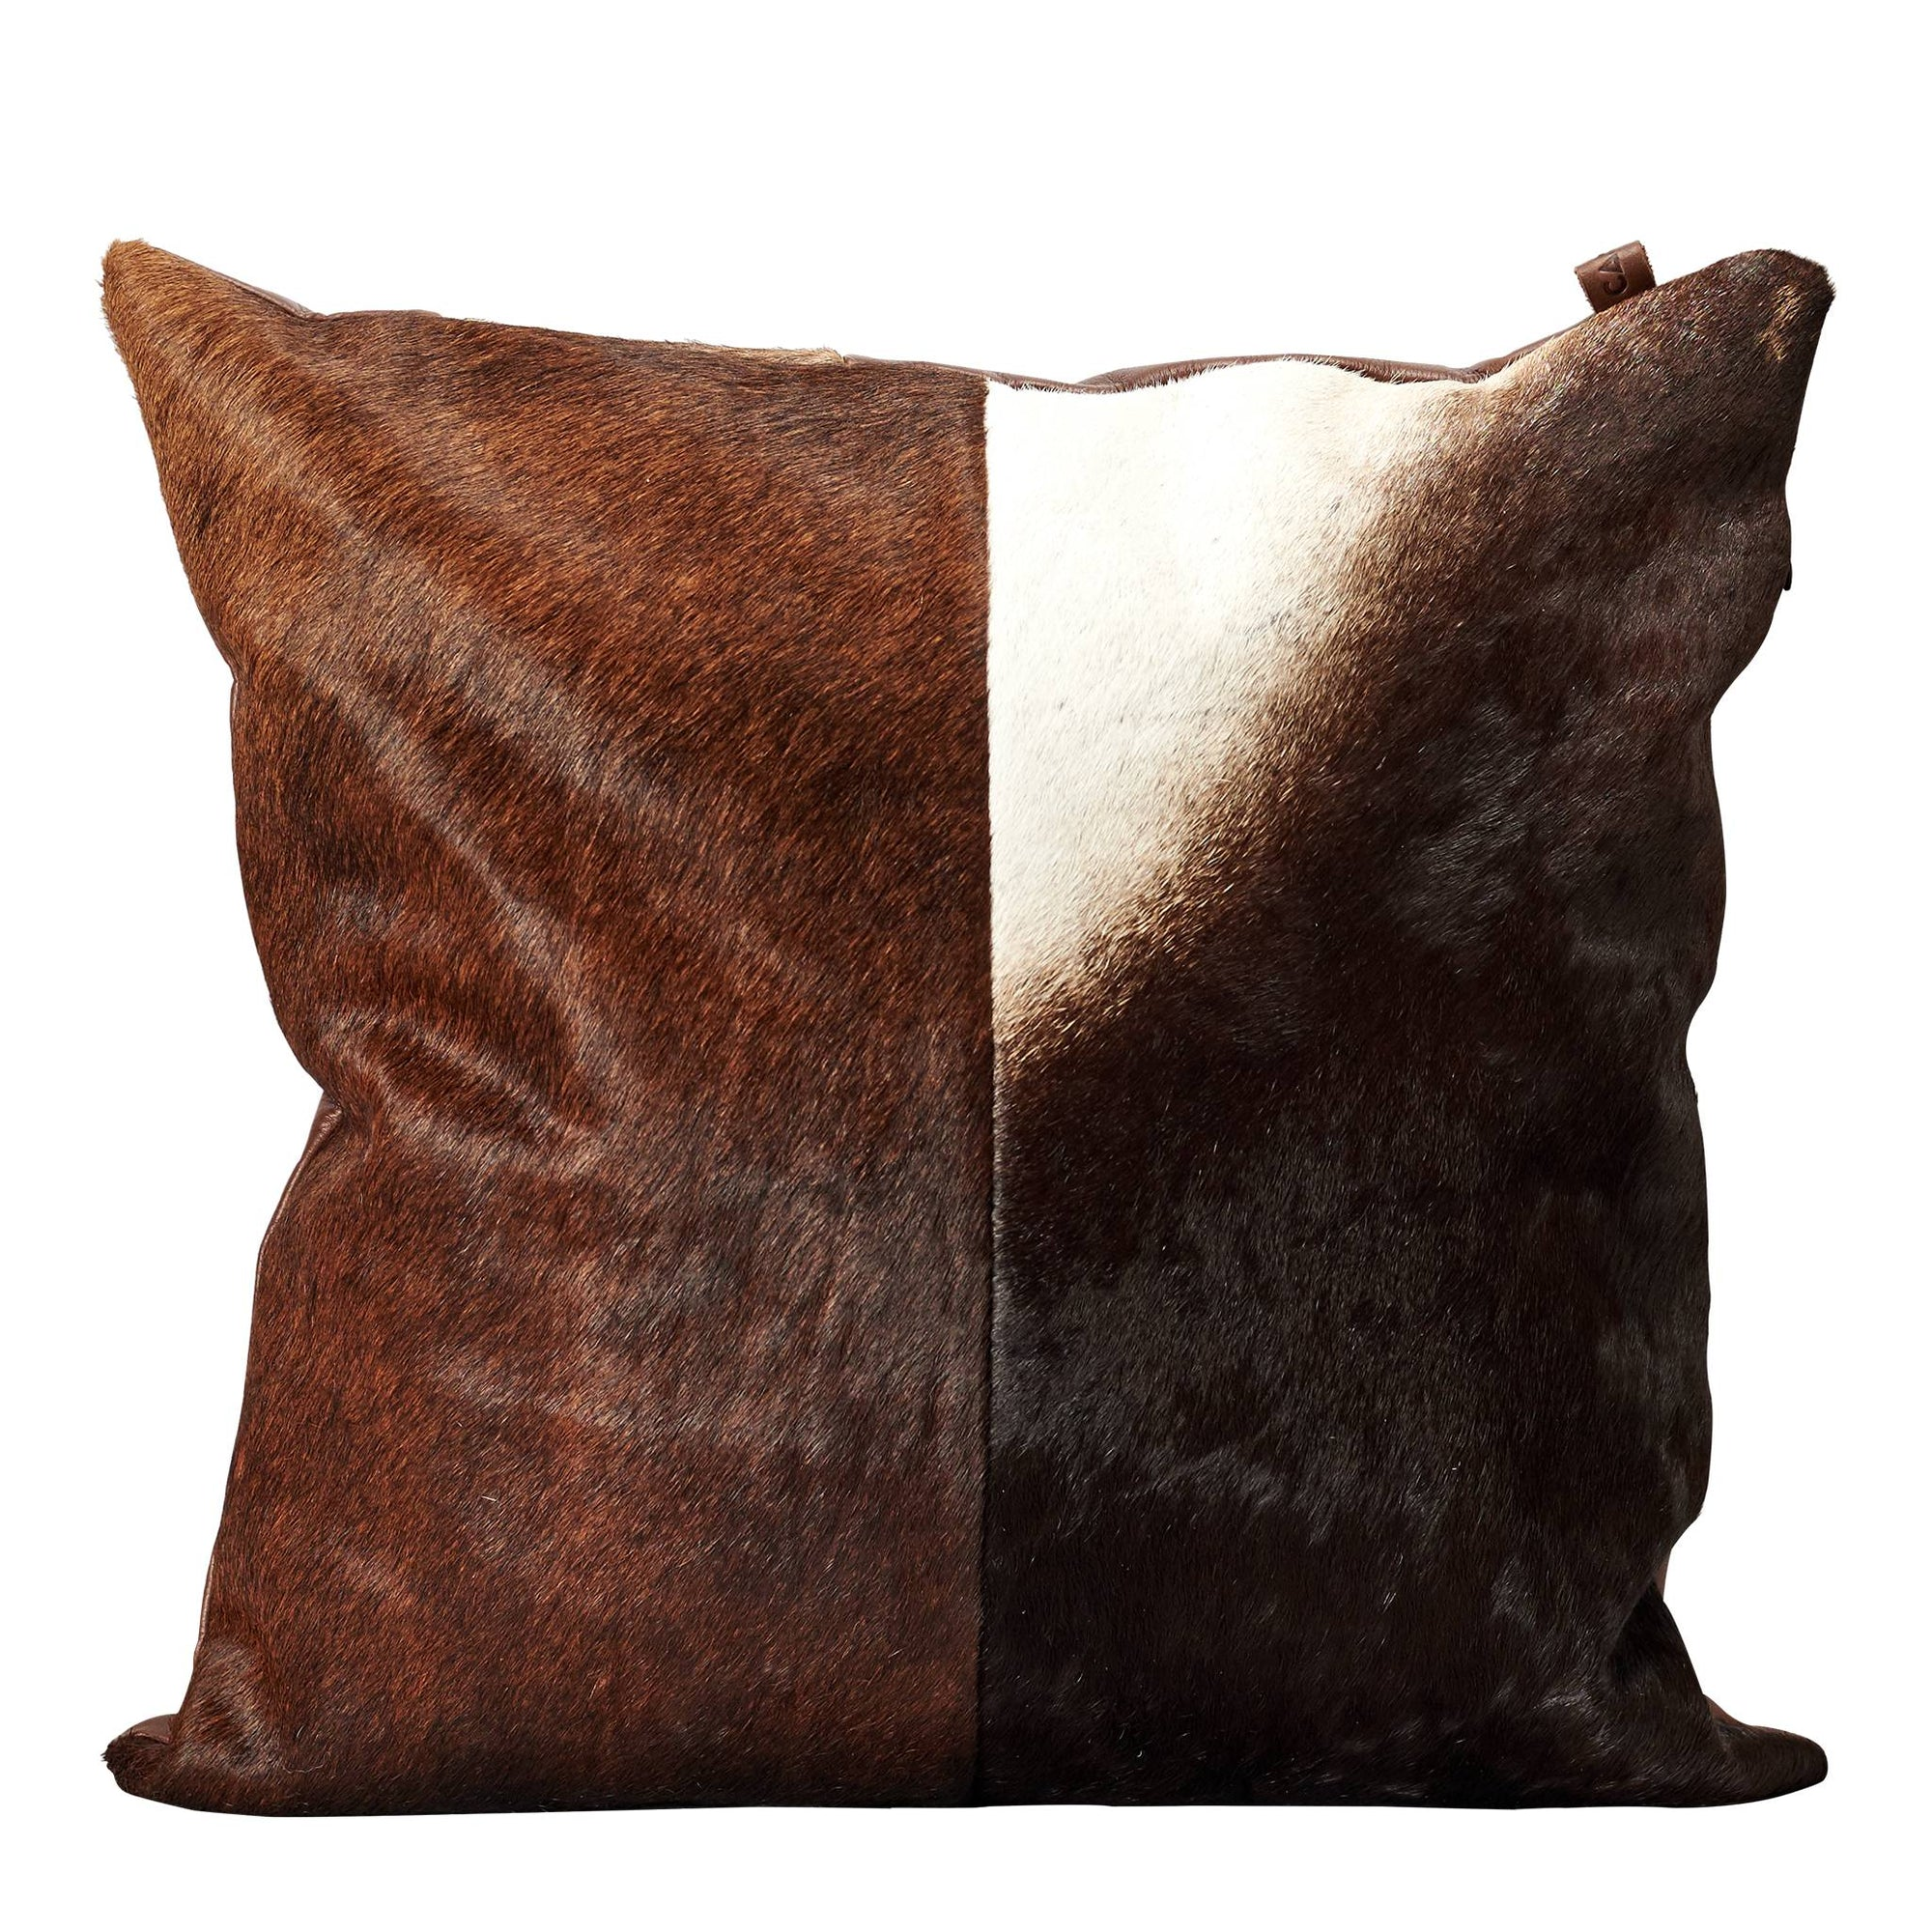 Leather Sofa Restuffing: Cowhide Sofa Cushions